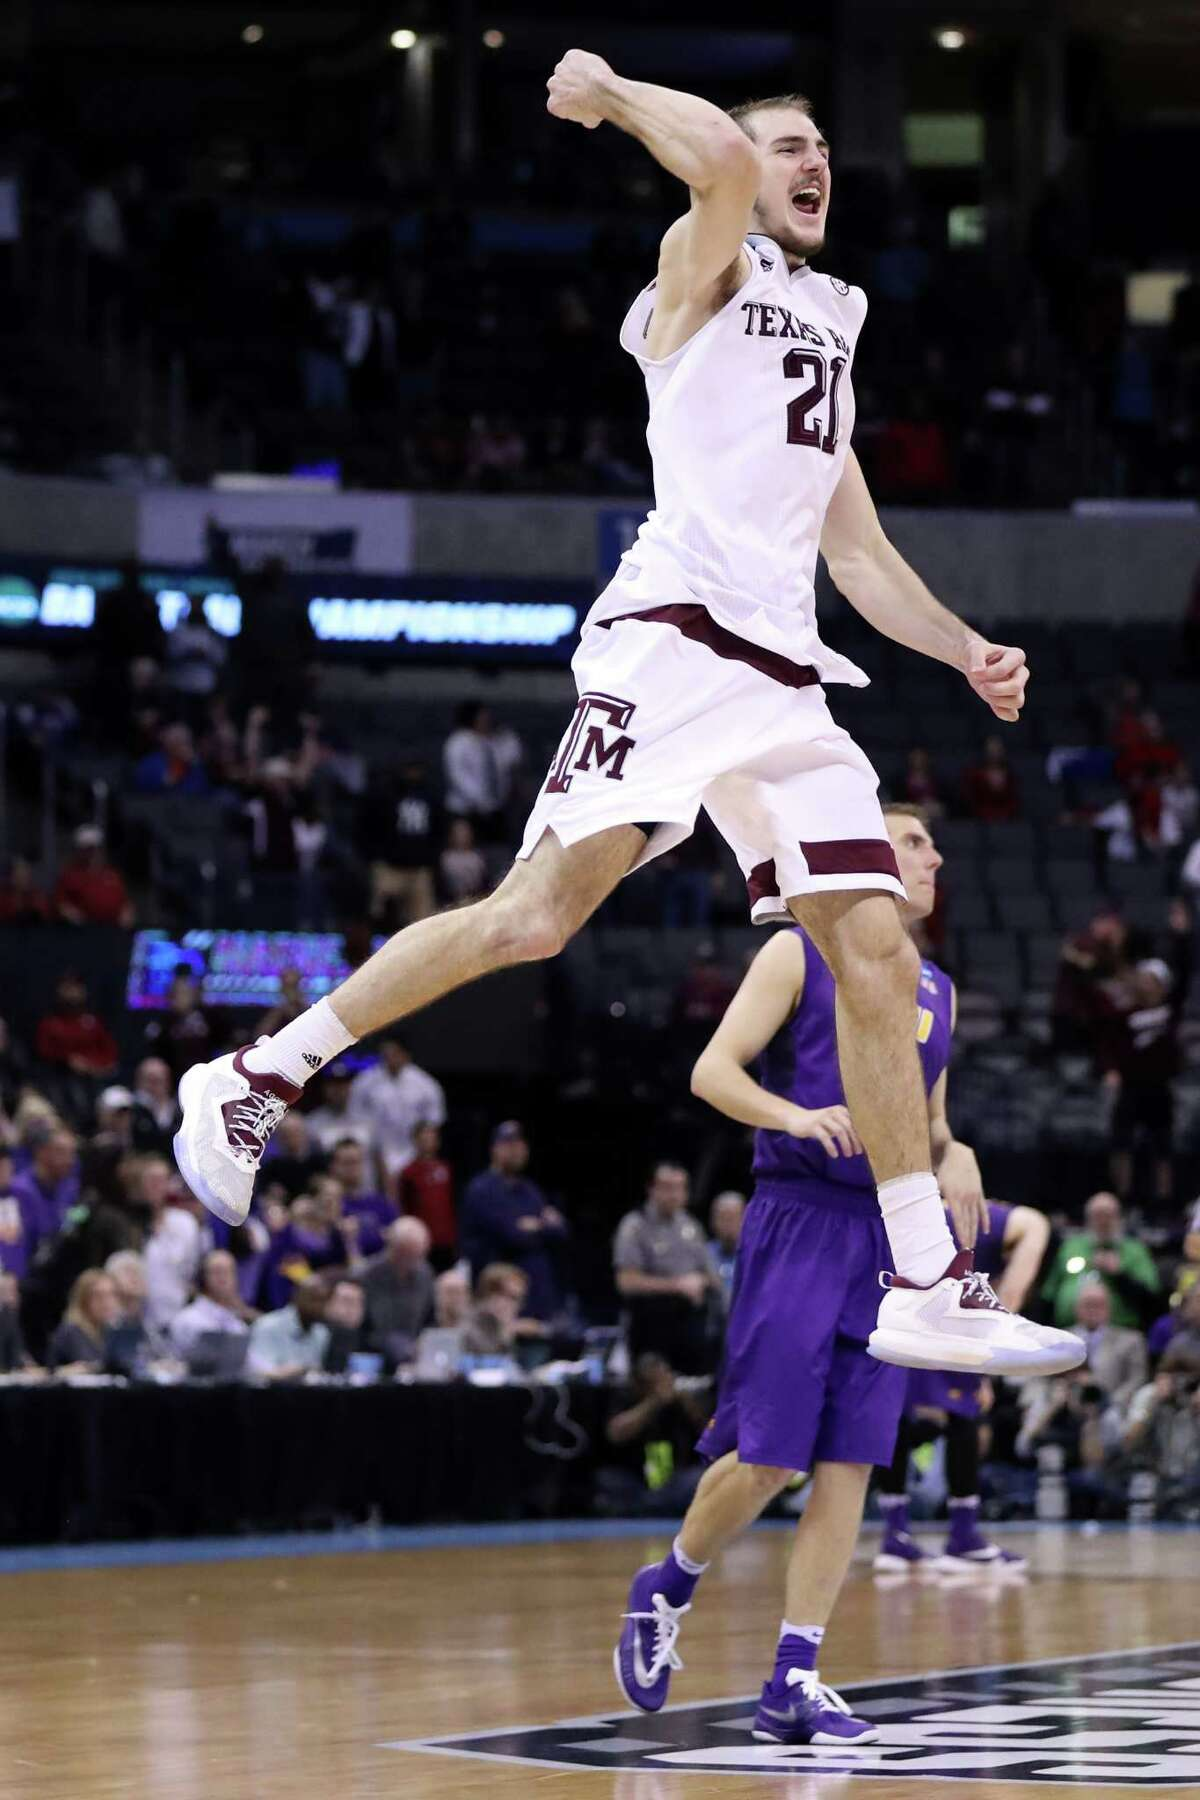 OKLAHOMA CITY, OK - MARCH 20: Alex Caruso #21 of the Texas A&M Aggies celebrates after defeating the Northern Iowa Panthers in double overtime with a score of 88 to 92 during the second round of the 2016 NCAA Men's Basketball Tournament at Chesapeake Energy Arena on March 20, 2016 in Oklahoma City, Oklahoma.